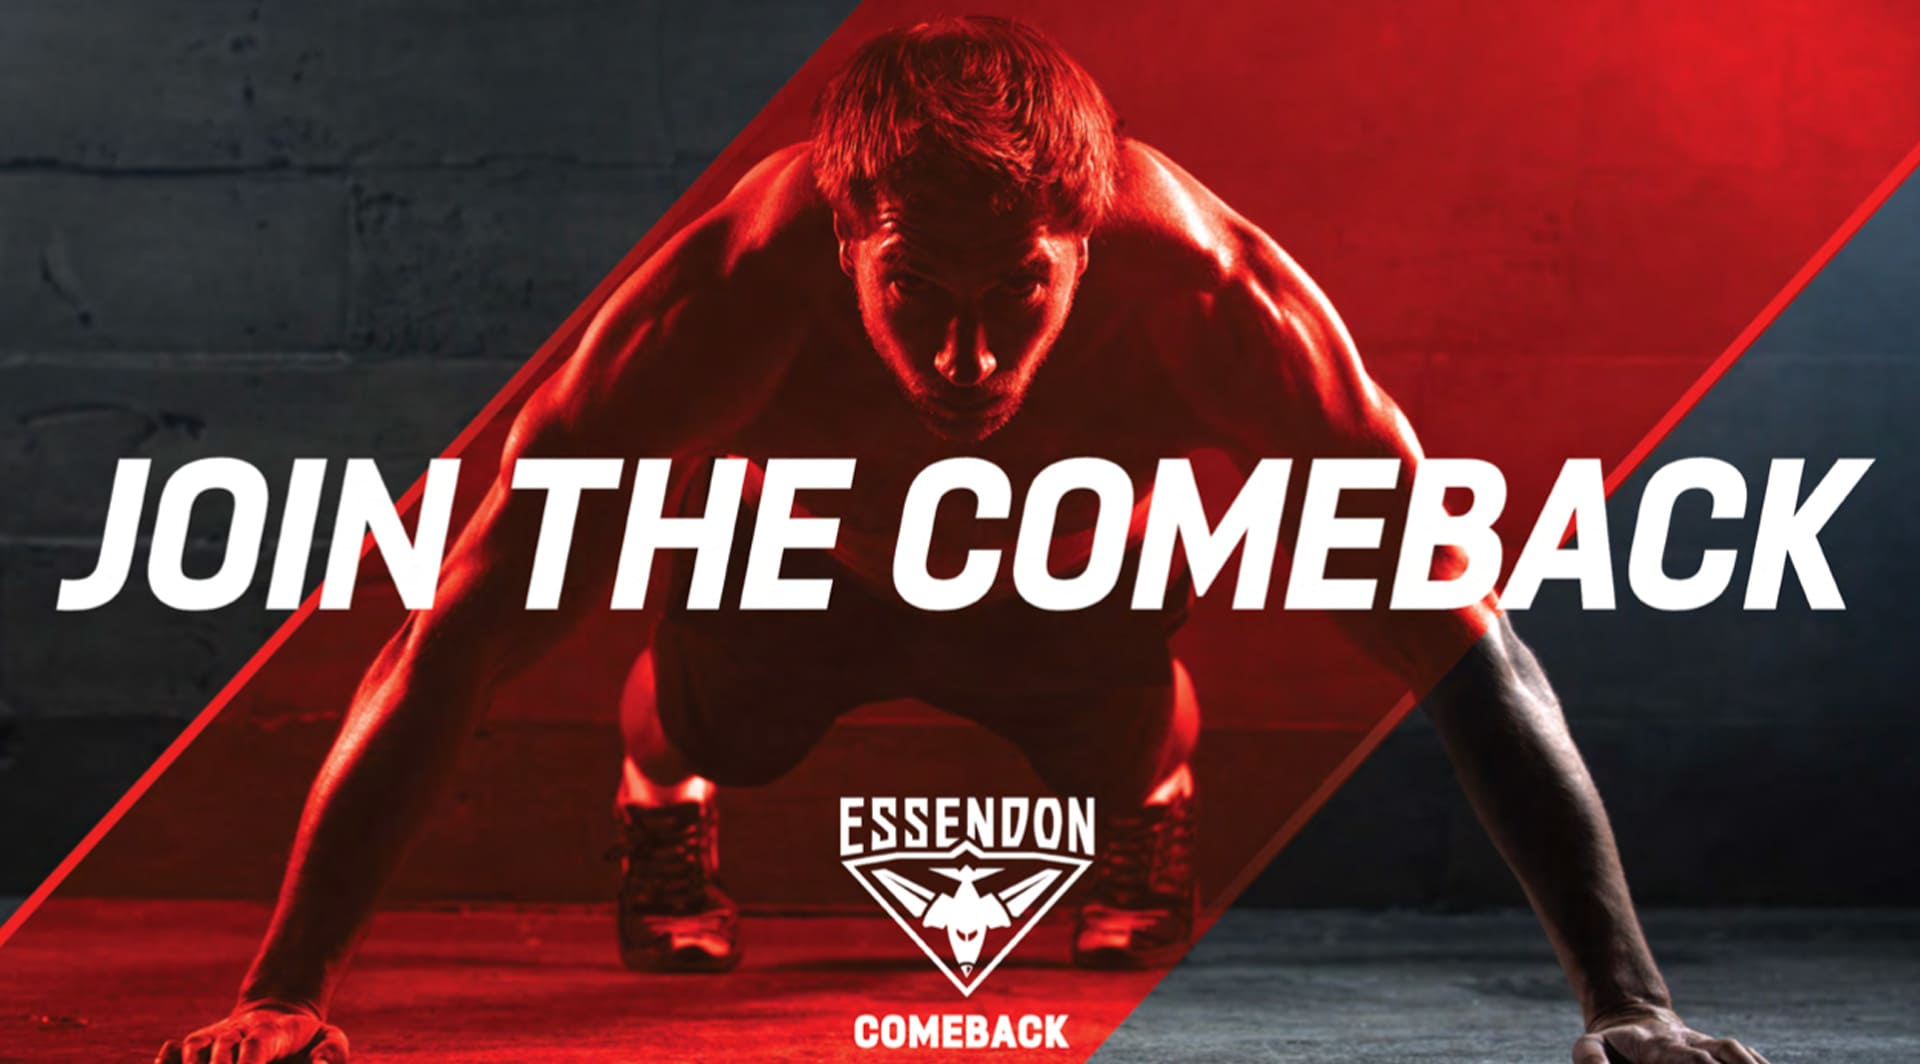 """Image that reads """"Join The Comeback"""" with a red overlay of an image of a man doing push-ups."""